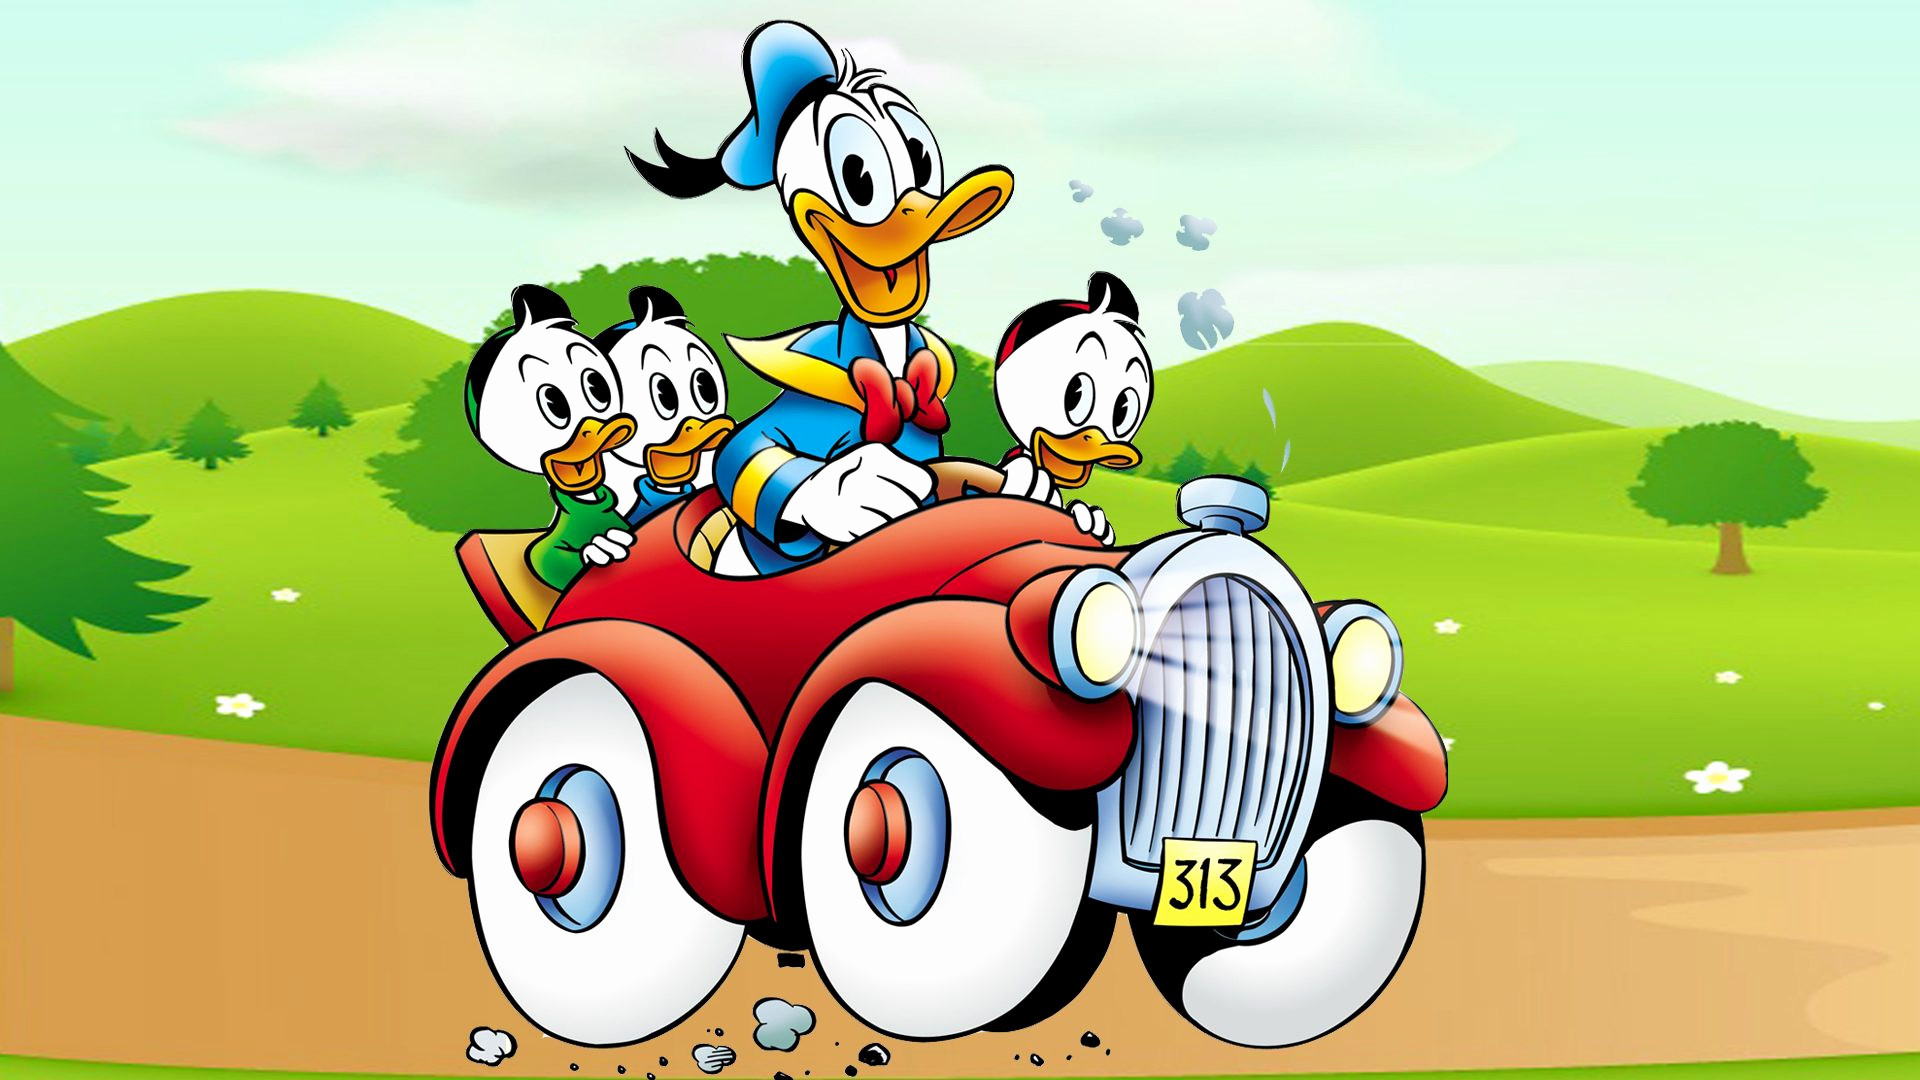 Car Cartoon Wallpaper New Donald Duck Cartoon Image Donald Duck Cartoon Images Hd 1920x1080 Download Hd Wallpaper Wallpapertip